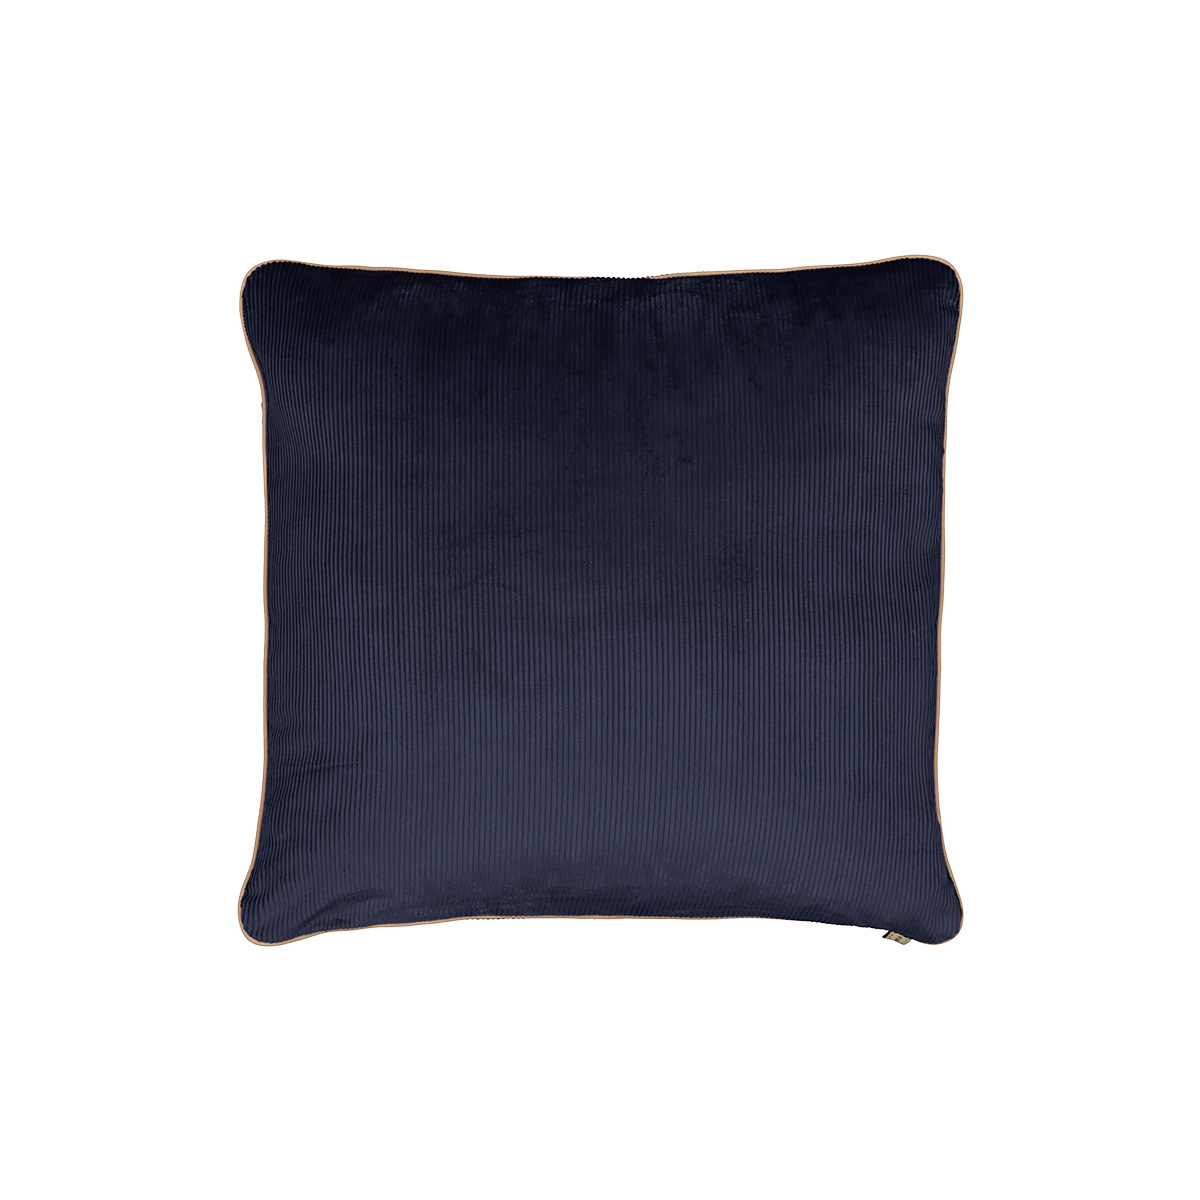 Carino Cushion, Navy Blue Velvet